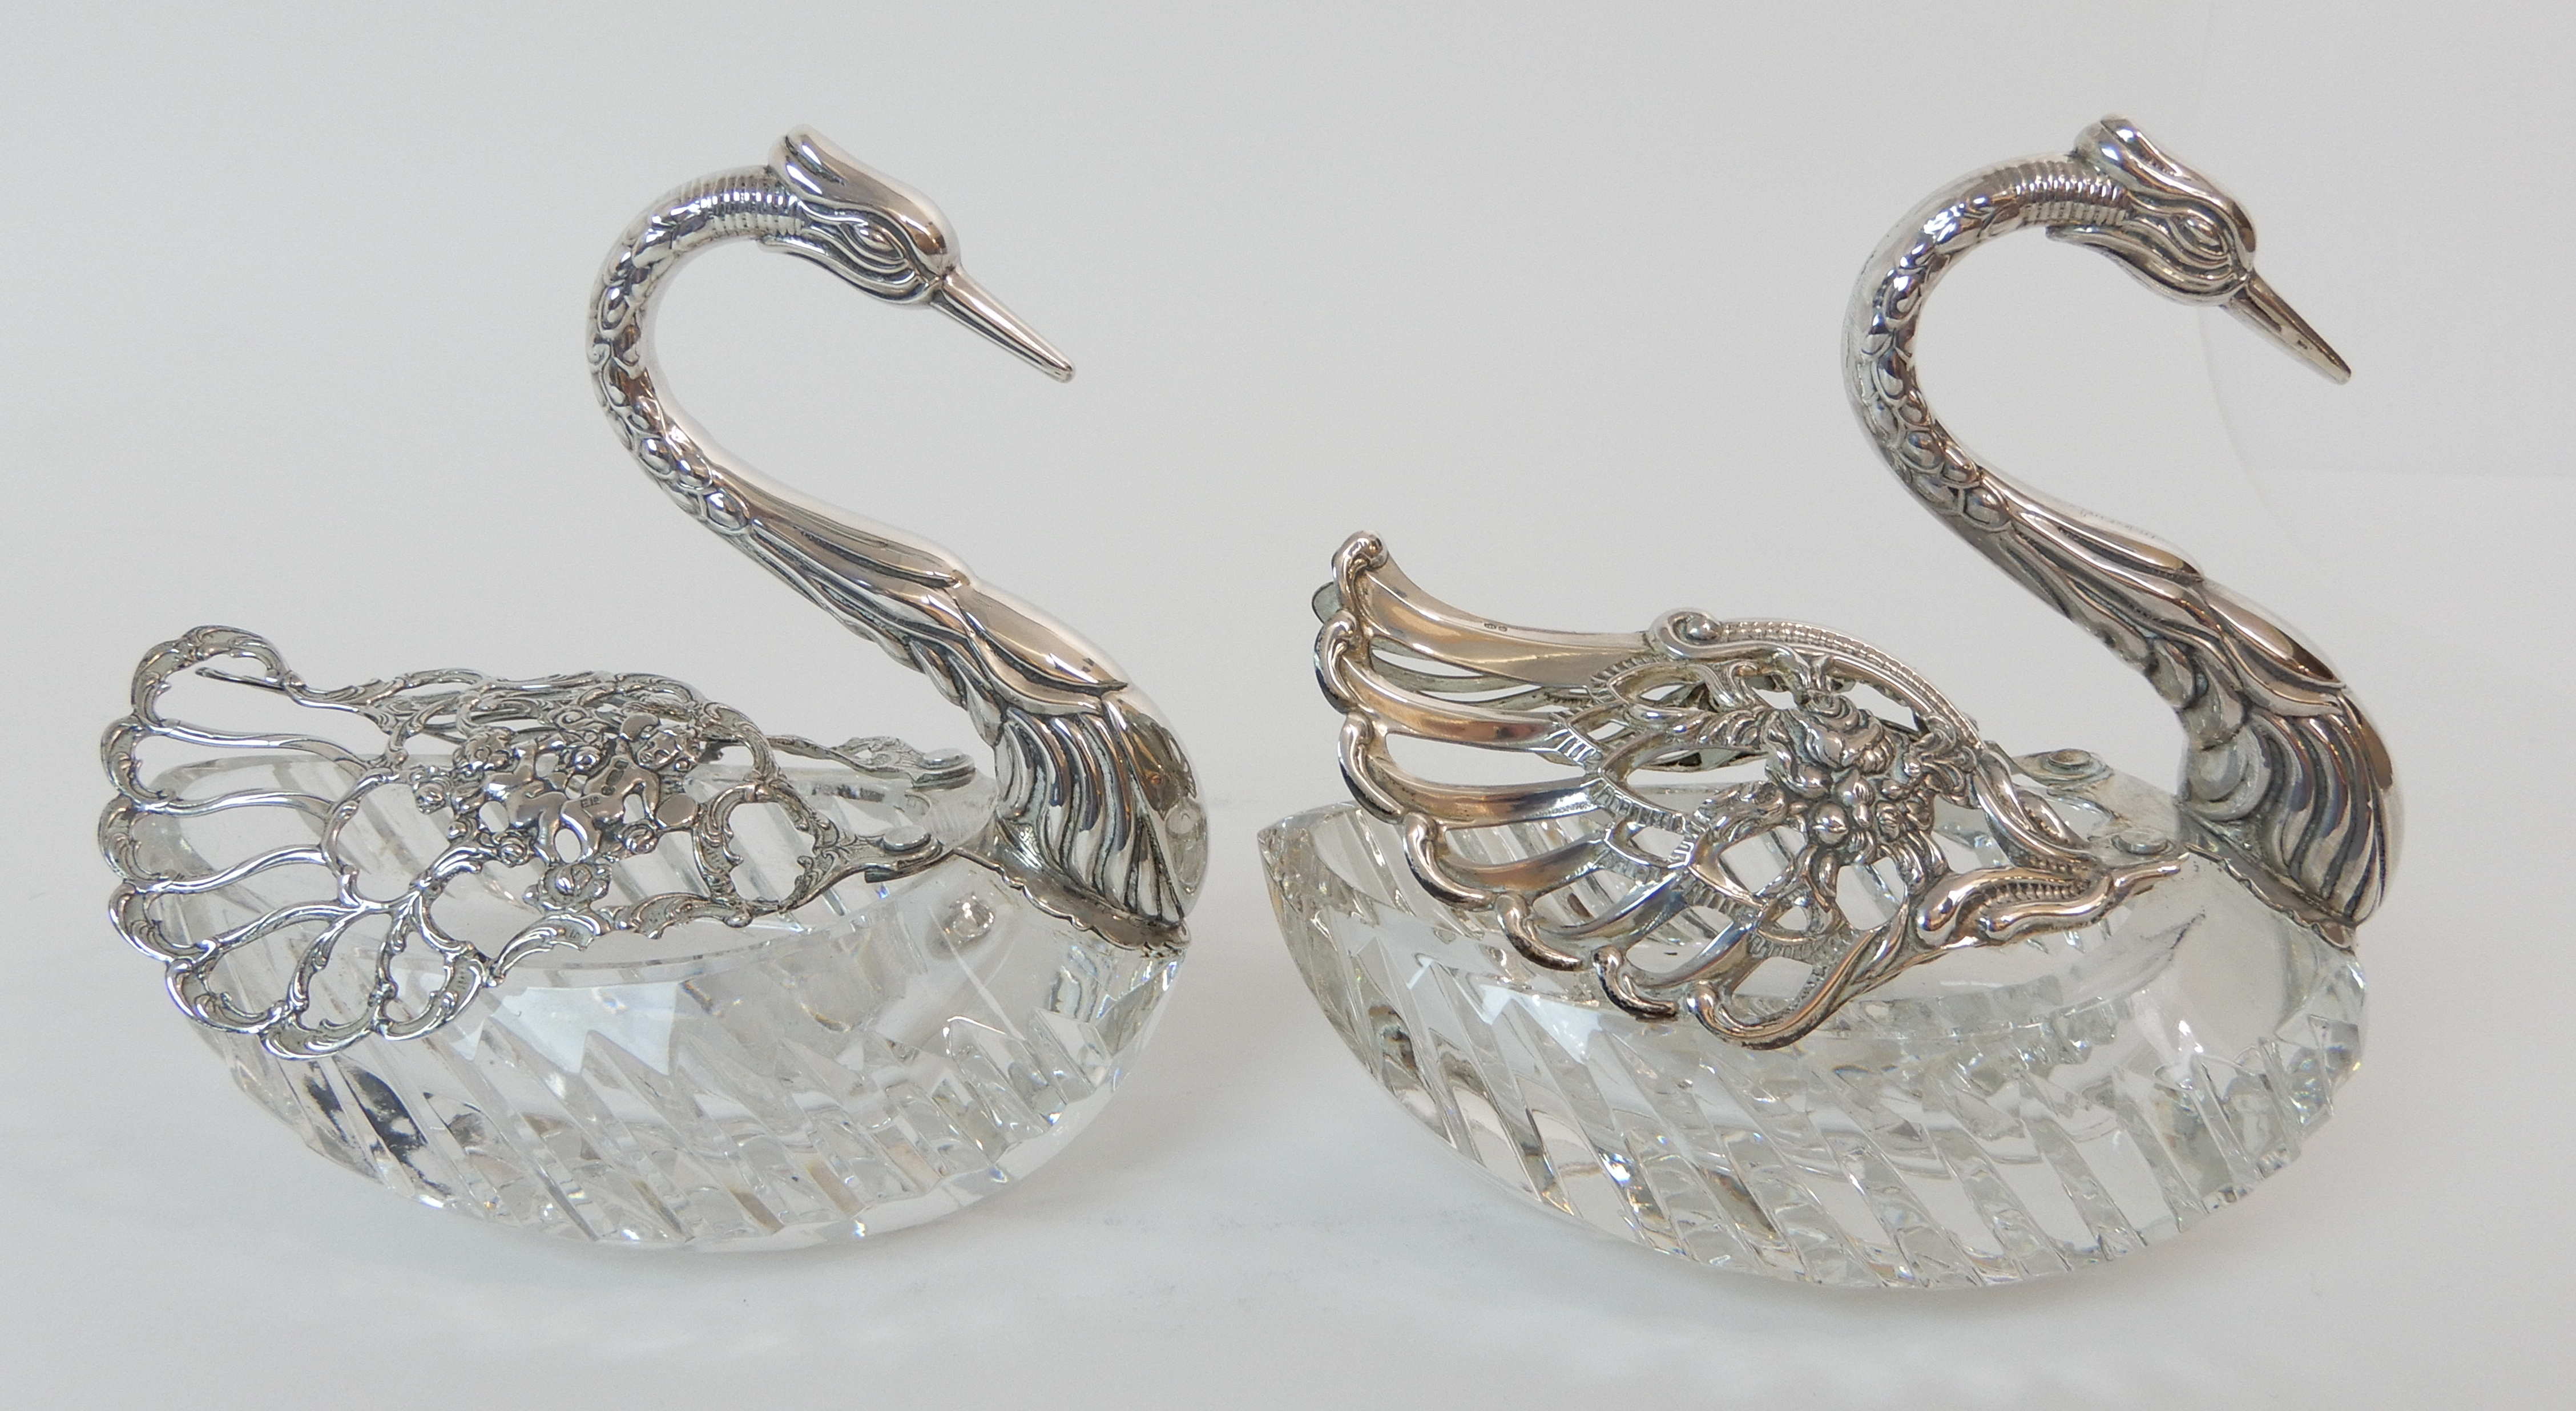 Lot 140 - FOUR CONTINENTAL SILVER AND MOULDED GLASS TRINKET DISHES marked 925, modelled as swans, the